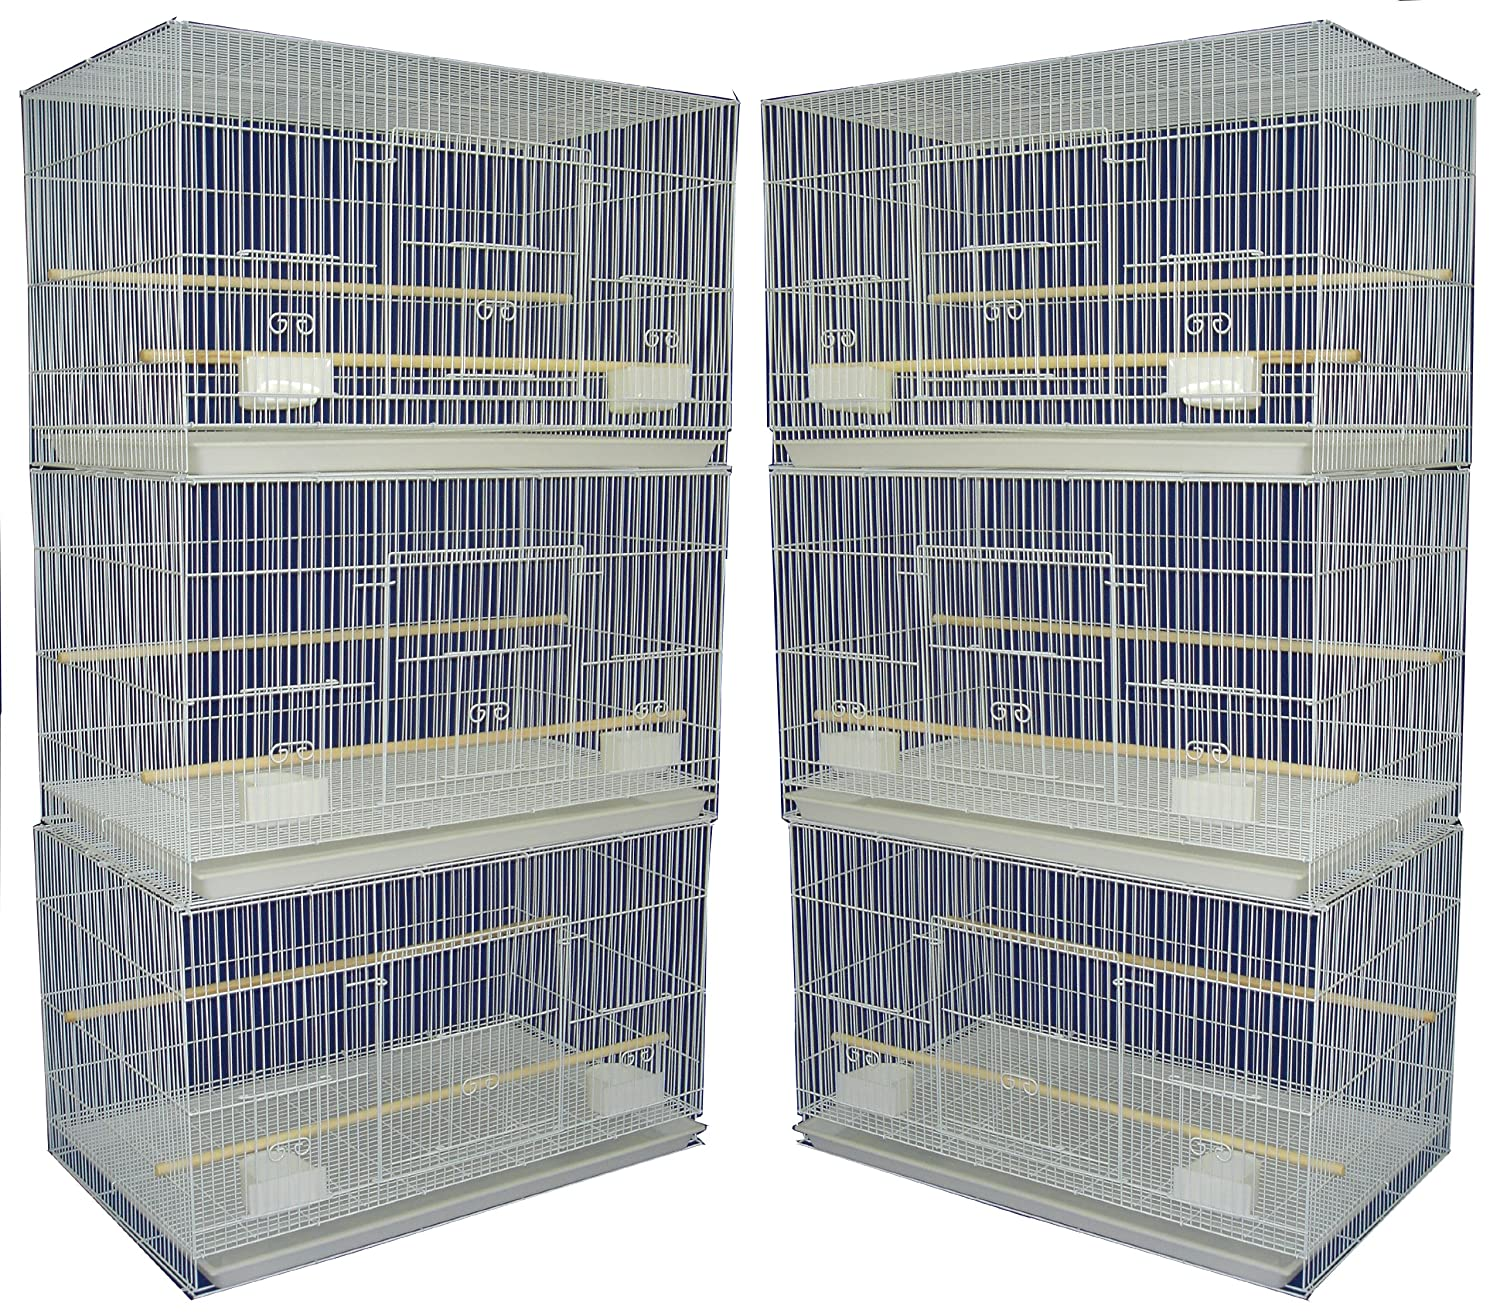 YML Small Breeding Cages, Pack of 6, White YML GROUP INC 2424WHT